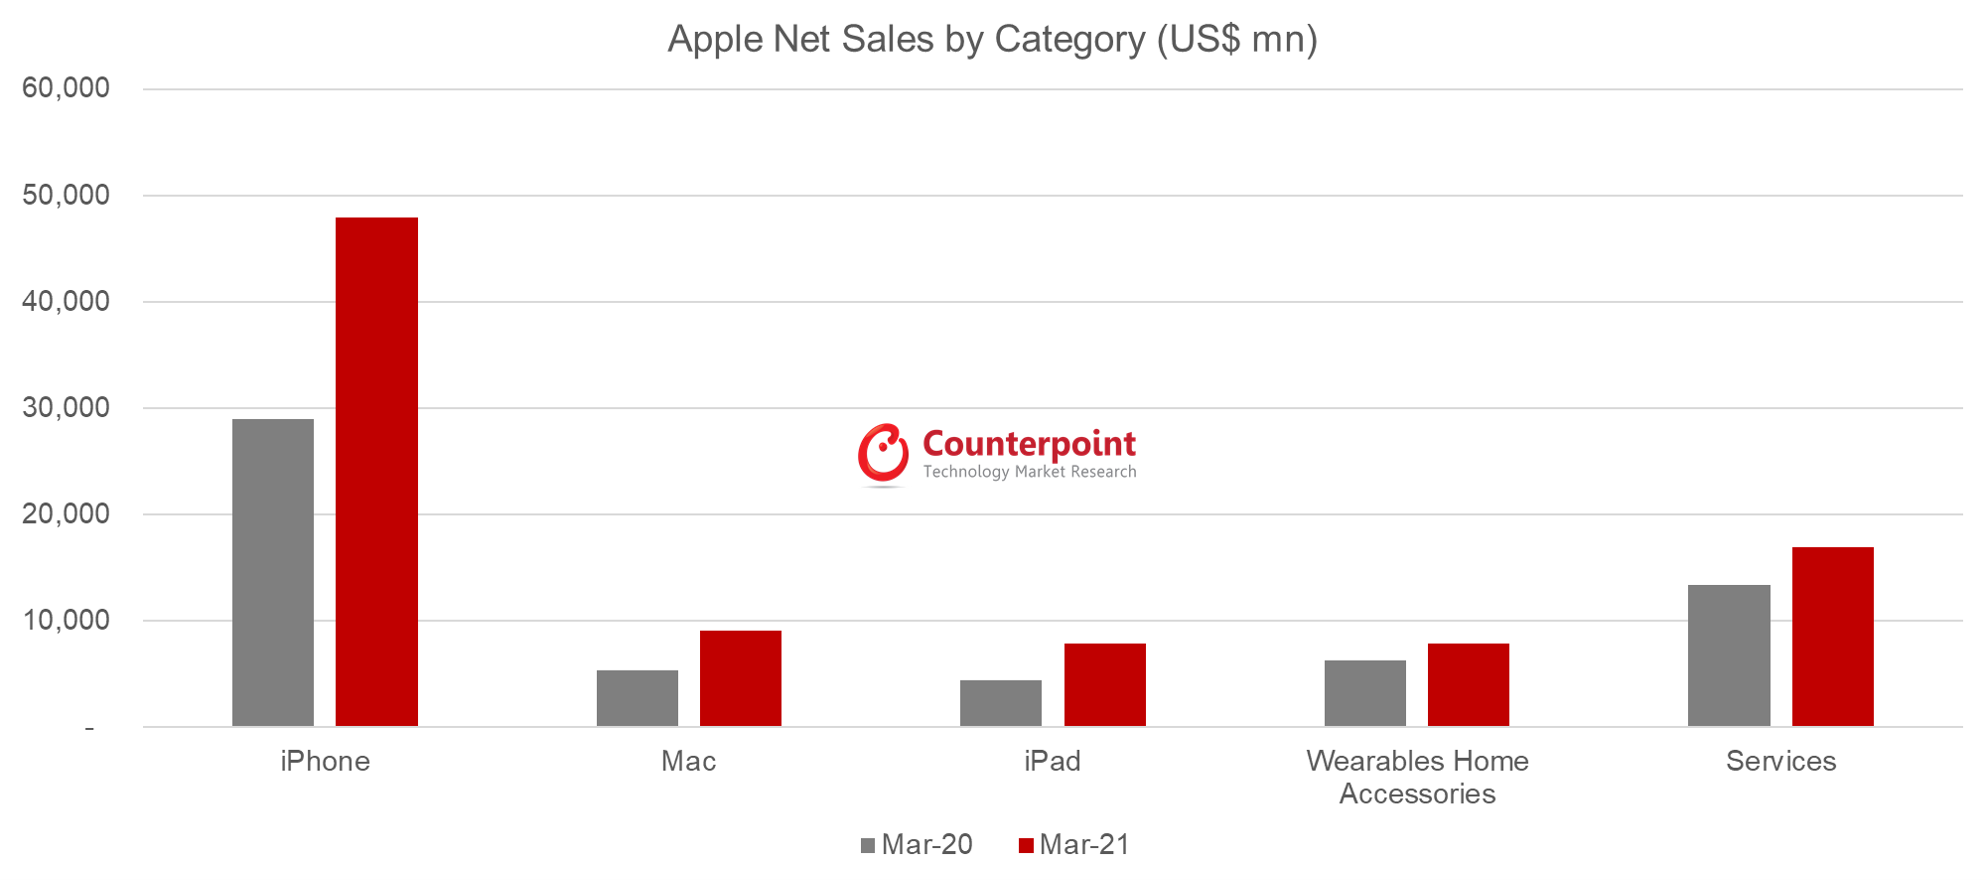 Counterpoint Research Apple Net Sales by Category